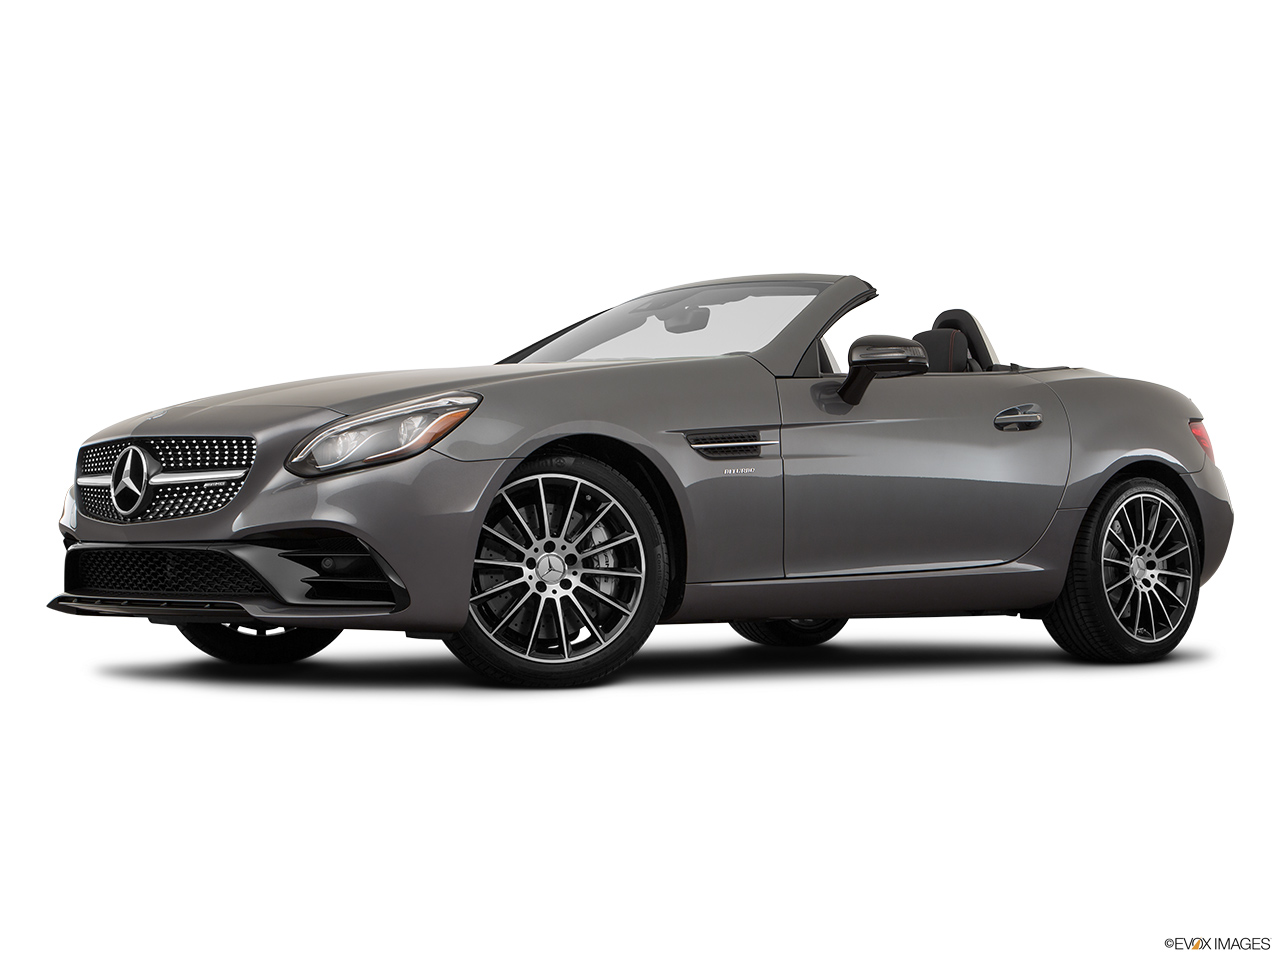 2019 Mercedes-Benz SLC-class SLC43 AMG Low/wide front 5/8.